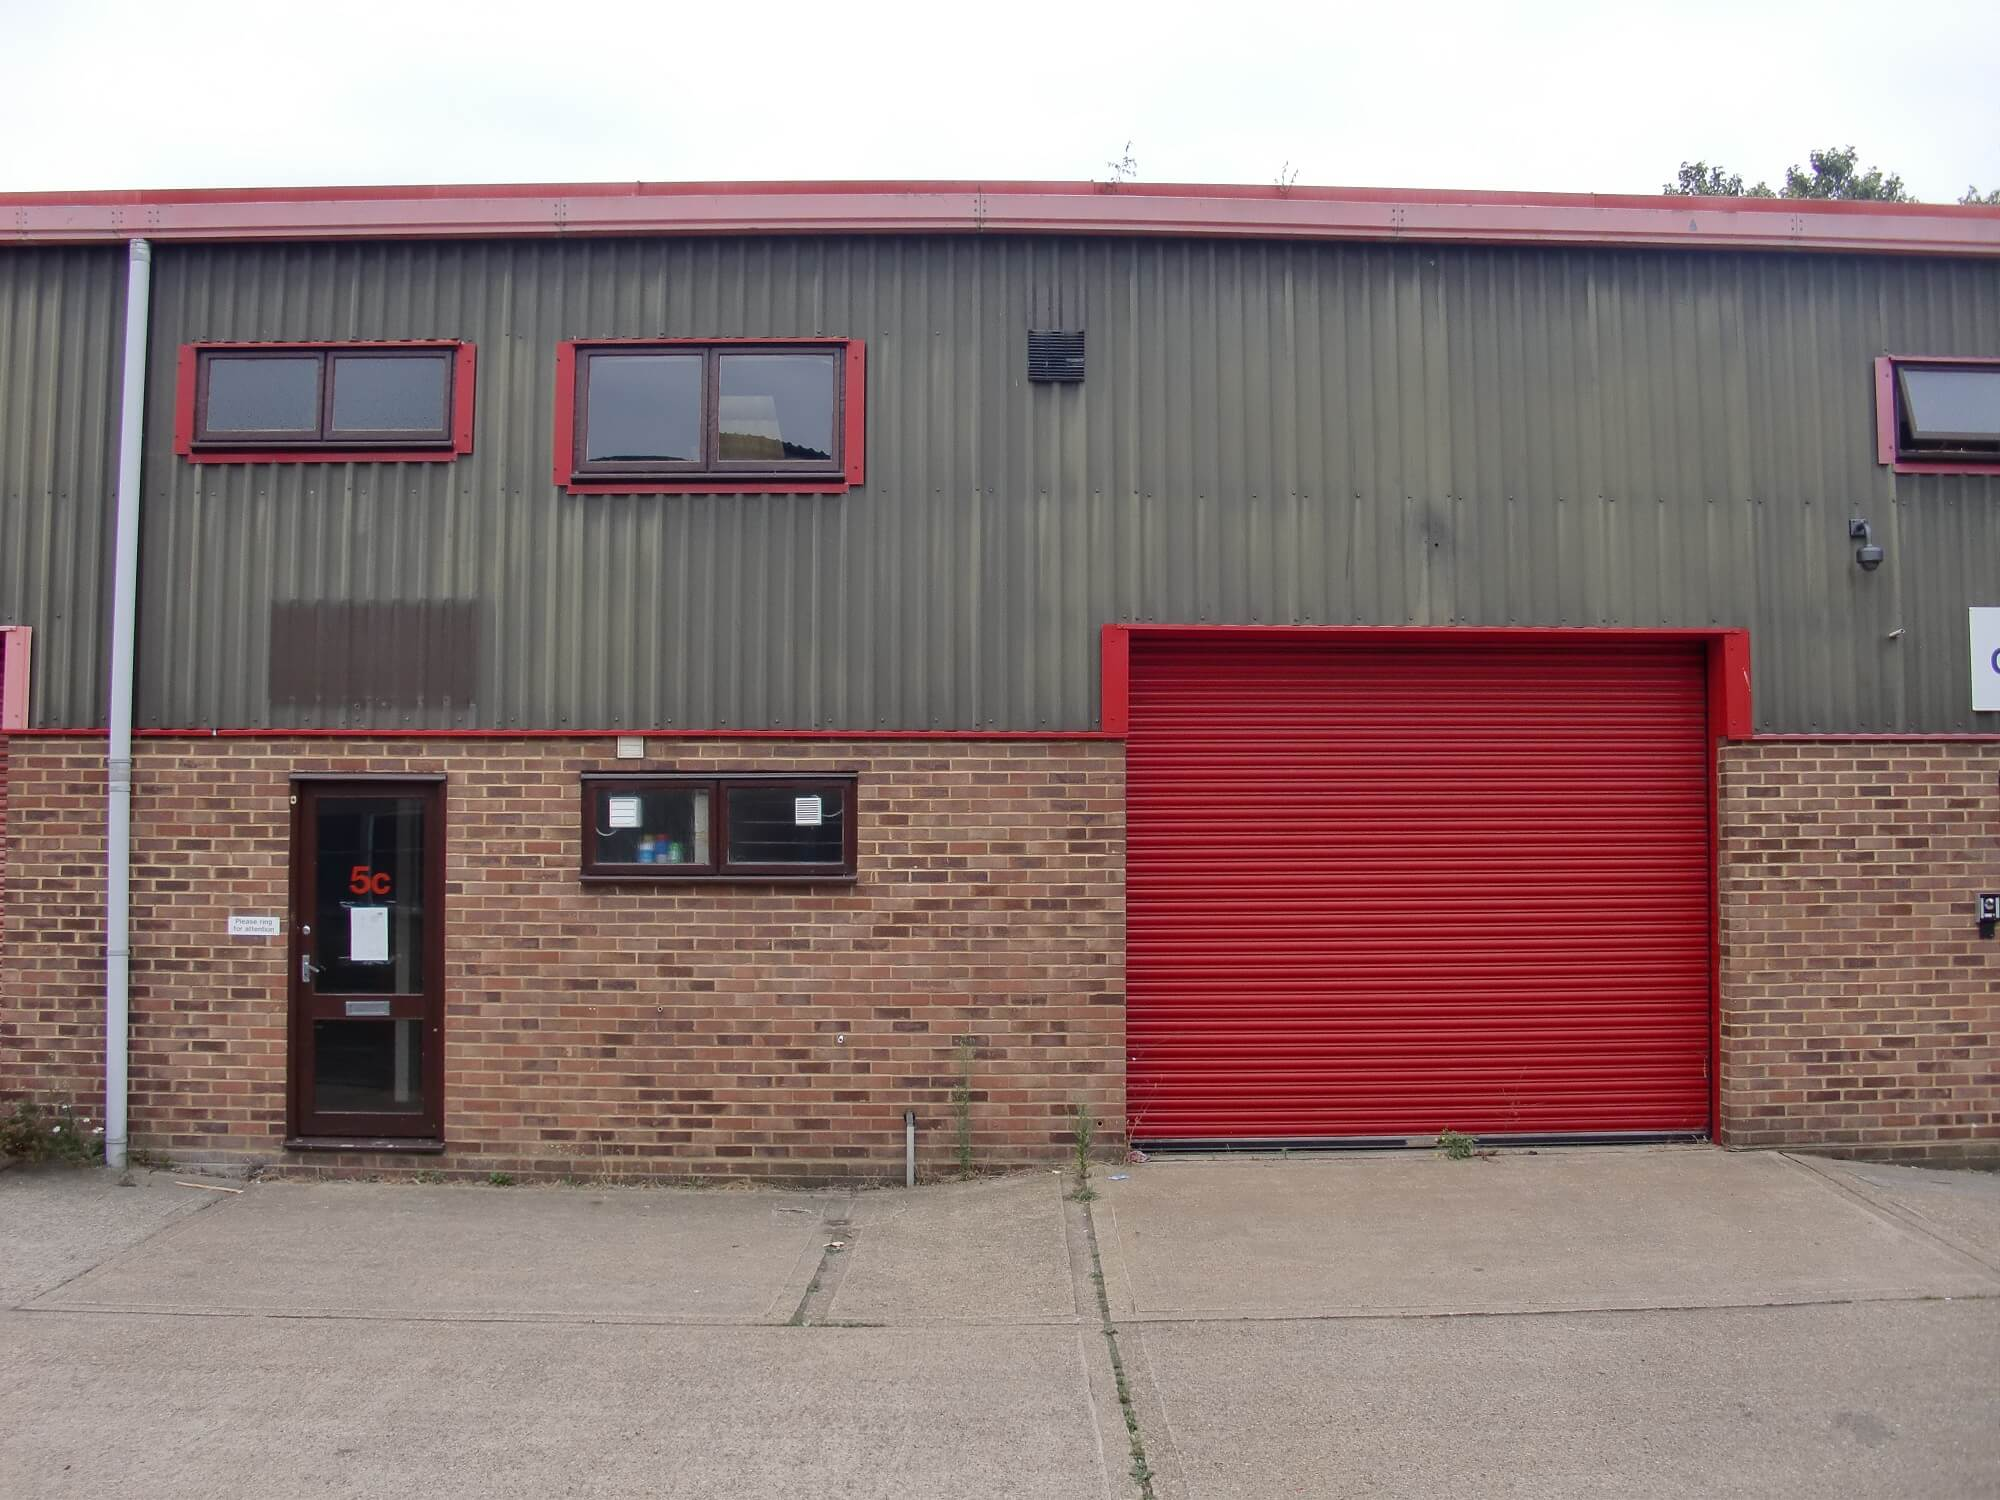 MR Dental takes warehouse property in Woking